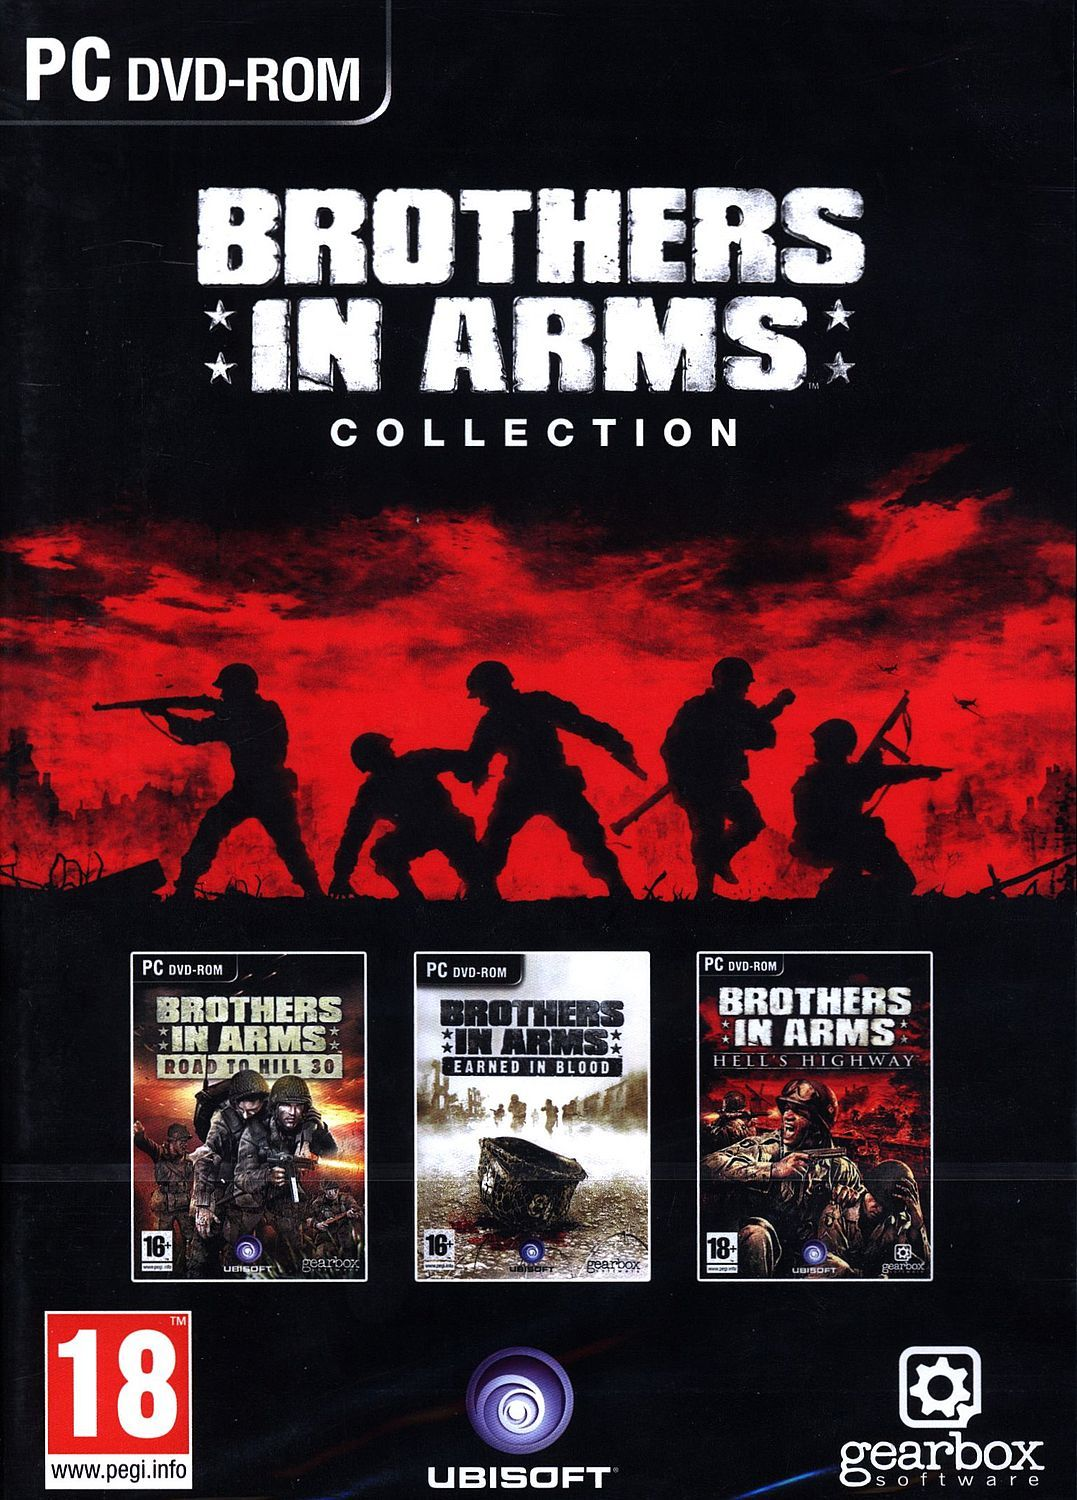 Brothers in Arms Collection (PC) - 1